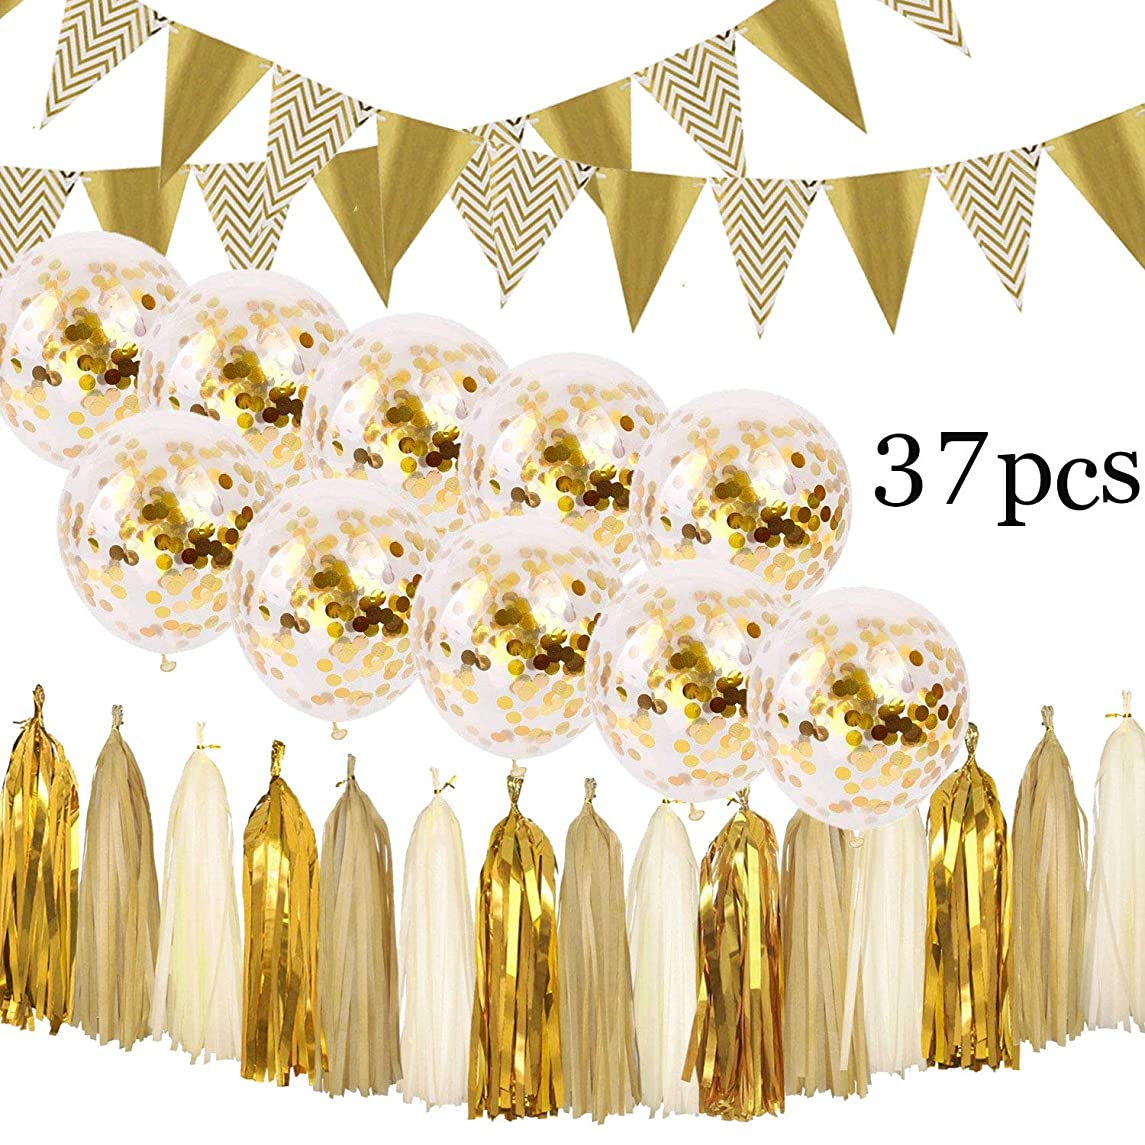 Gold Party Decorations - Glitter Banner/Garland Triangle Flags/Bunting/Pennant, Tissue Paper Tassels, Gold Confetti Balloons for Christmas, New Year, Baby Shower, Birthday decor, Wedding Supplies